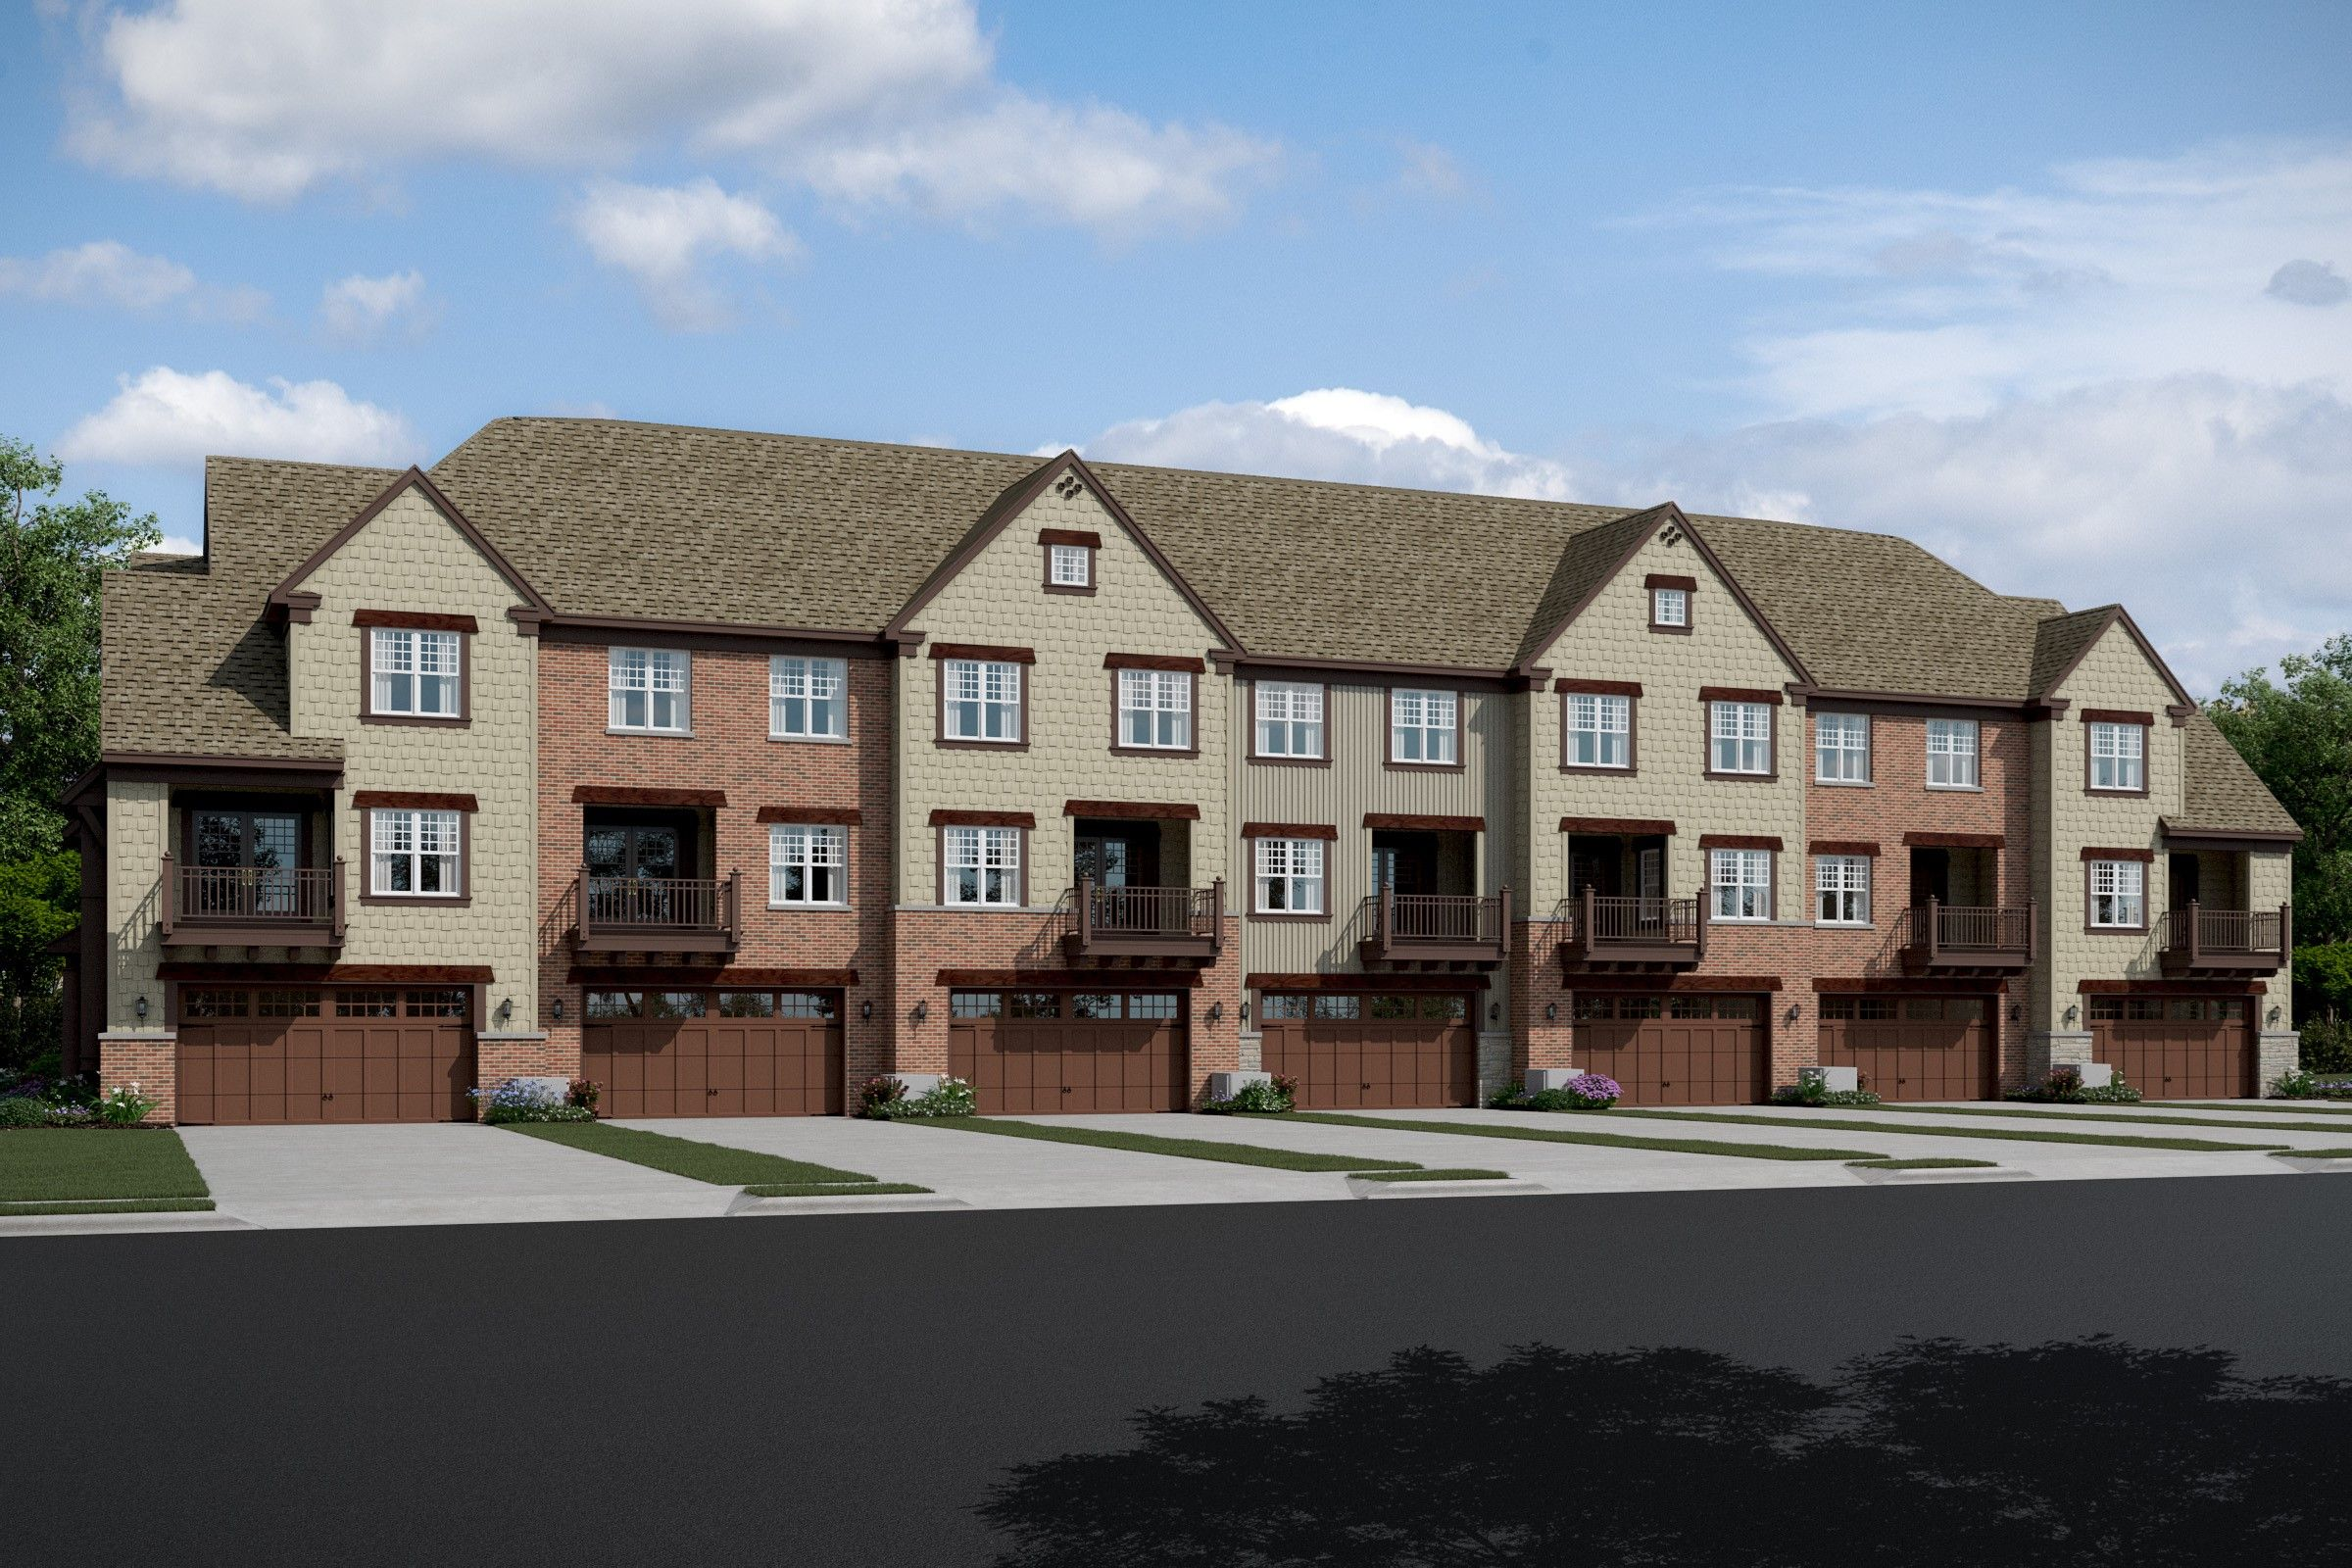 New Condo & Townhome Communities in Kenosha | NewHomeSource